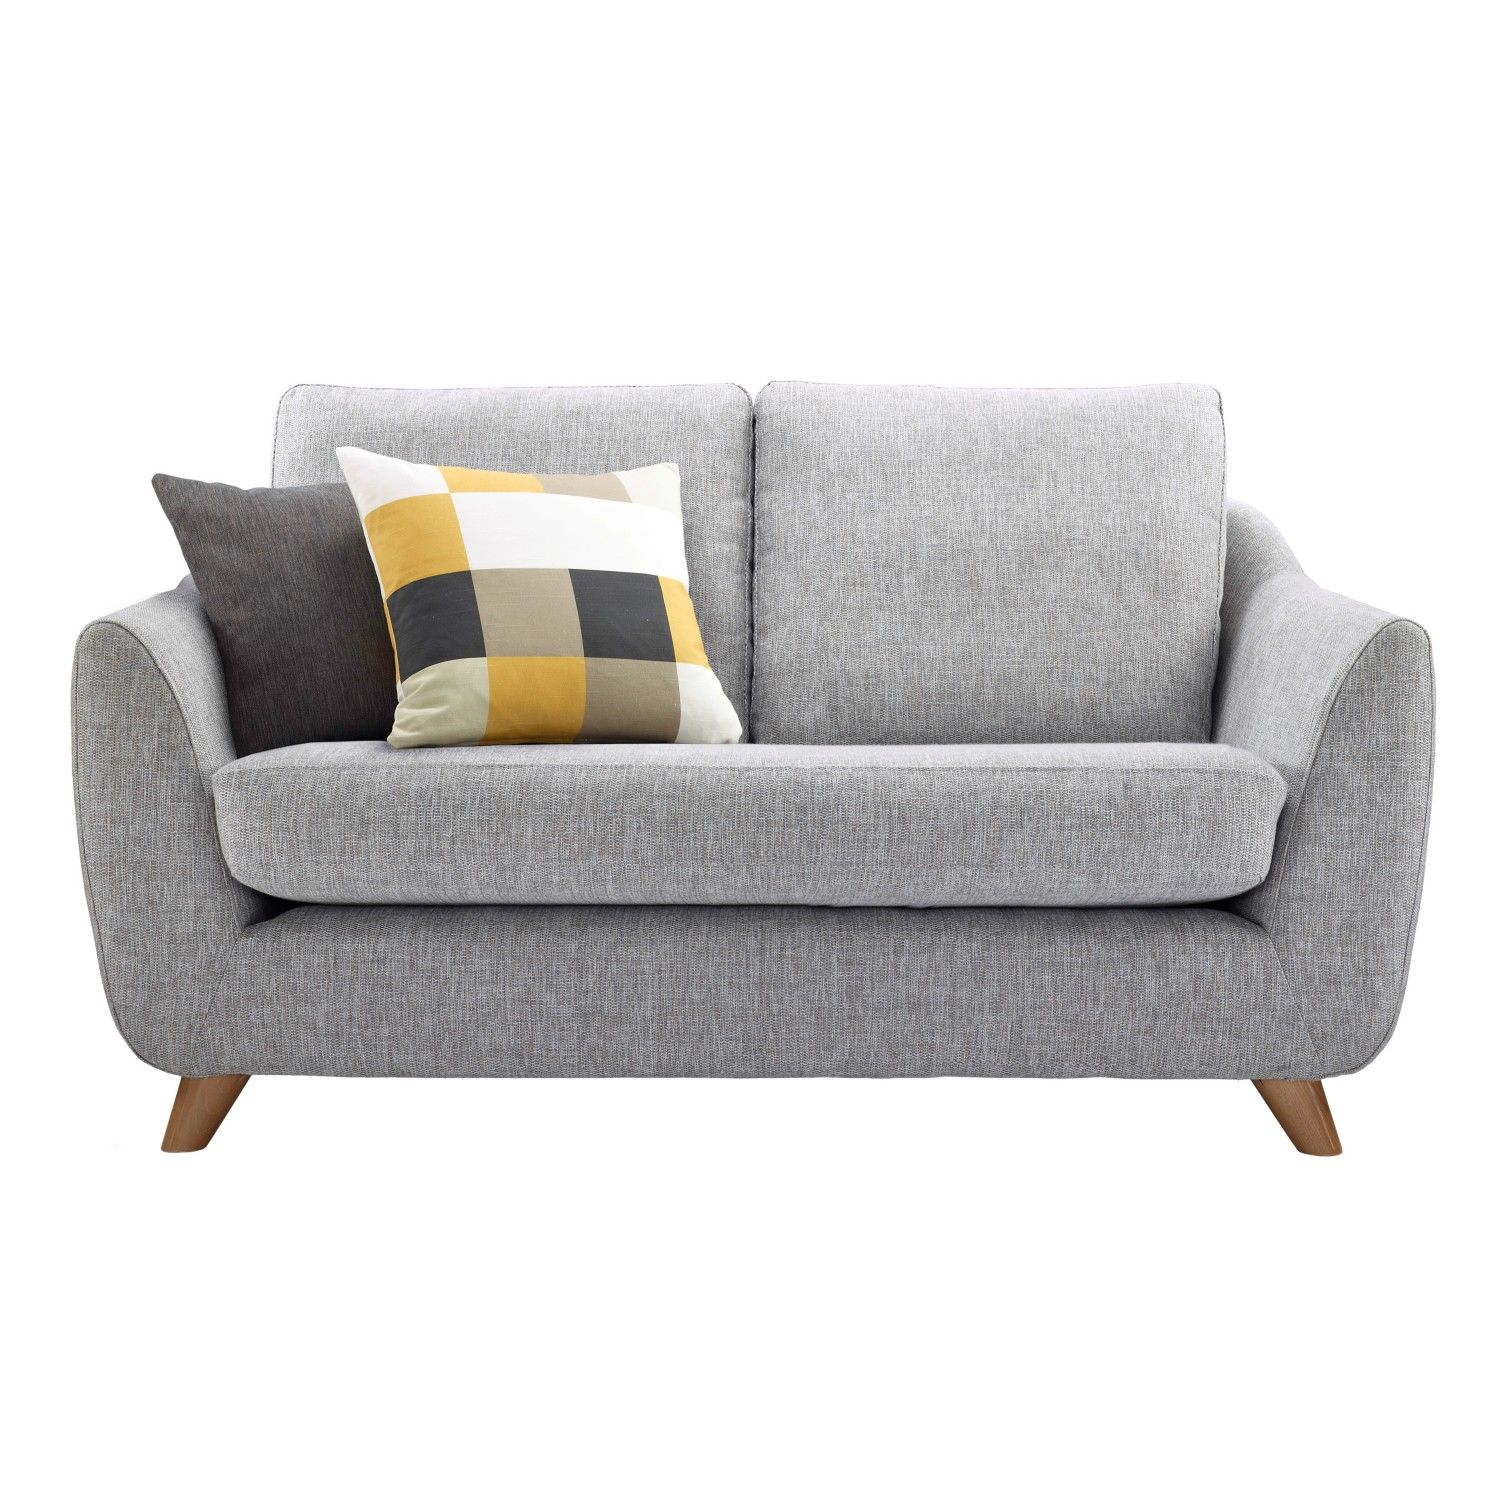 Best Loveseats For Small Spaces Cheap Small Sofa Decoration 640 x 480